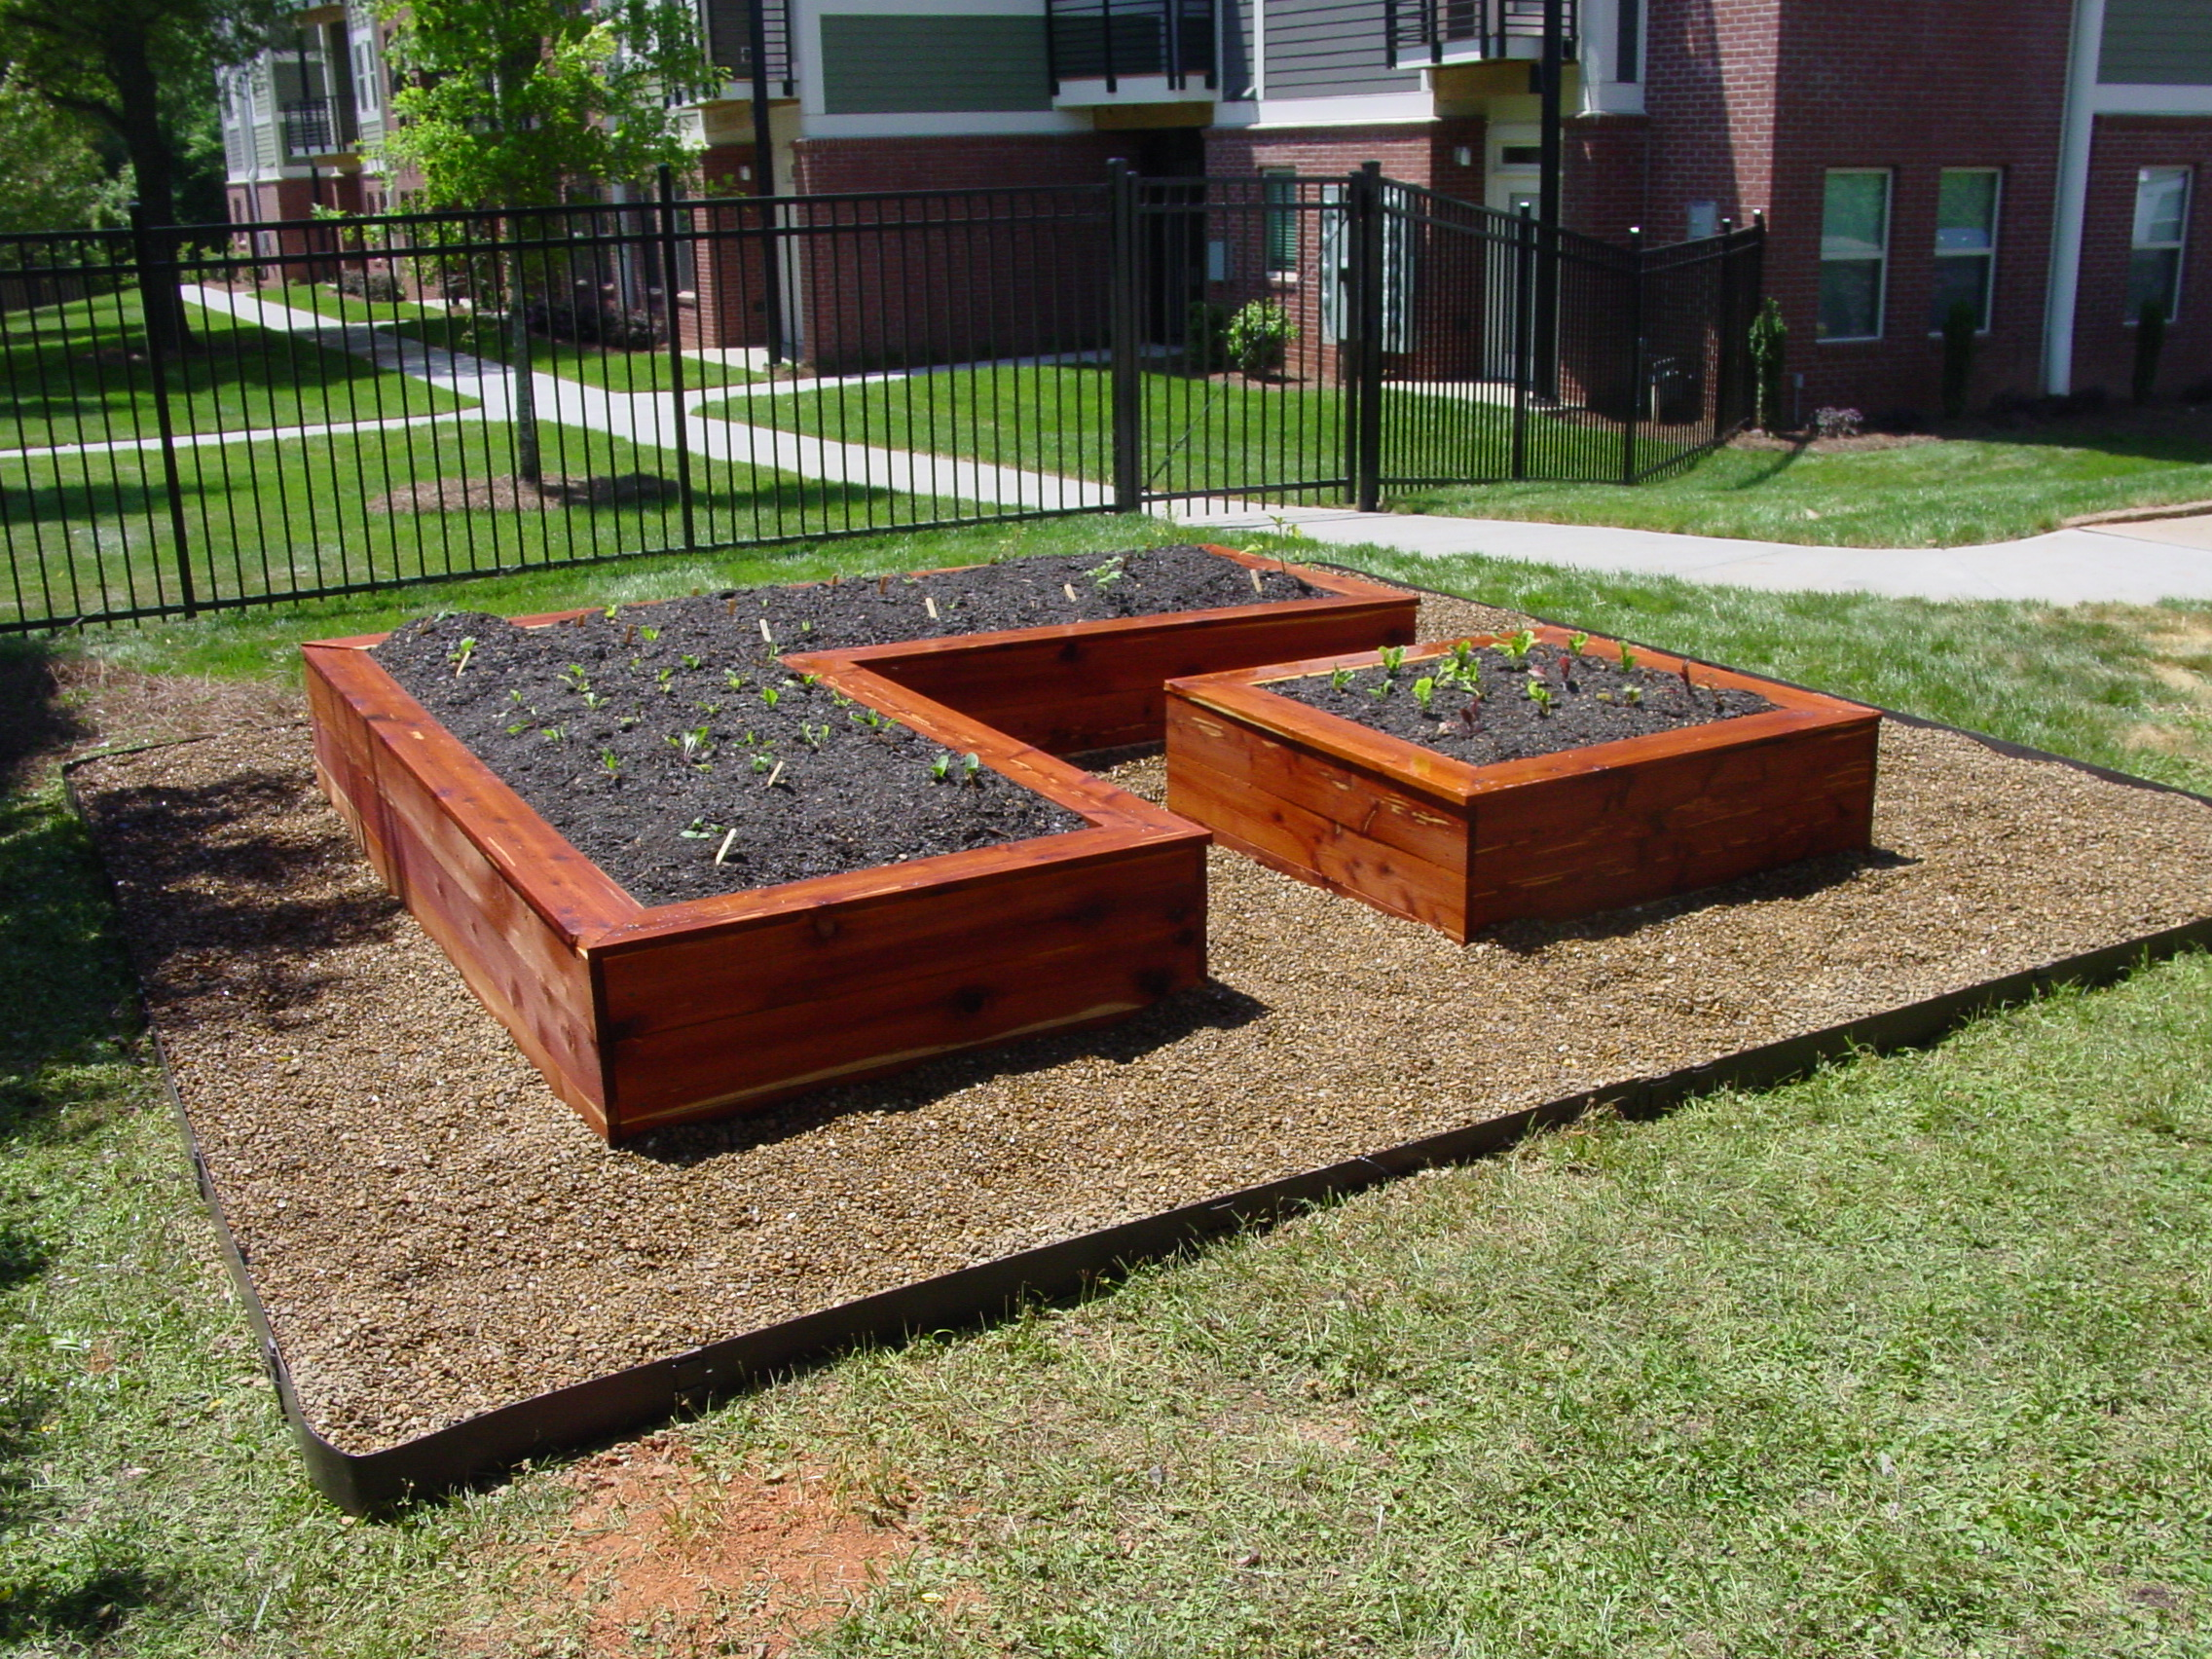 Raised Bed Designs Related Keywords Suggestions Raised Bed Designs Lo